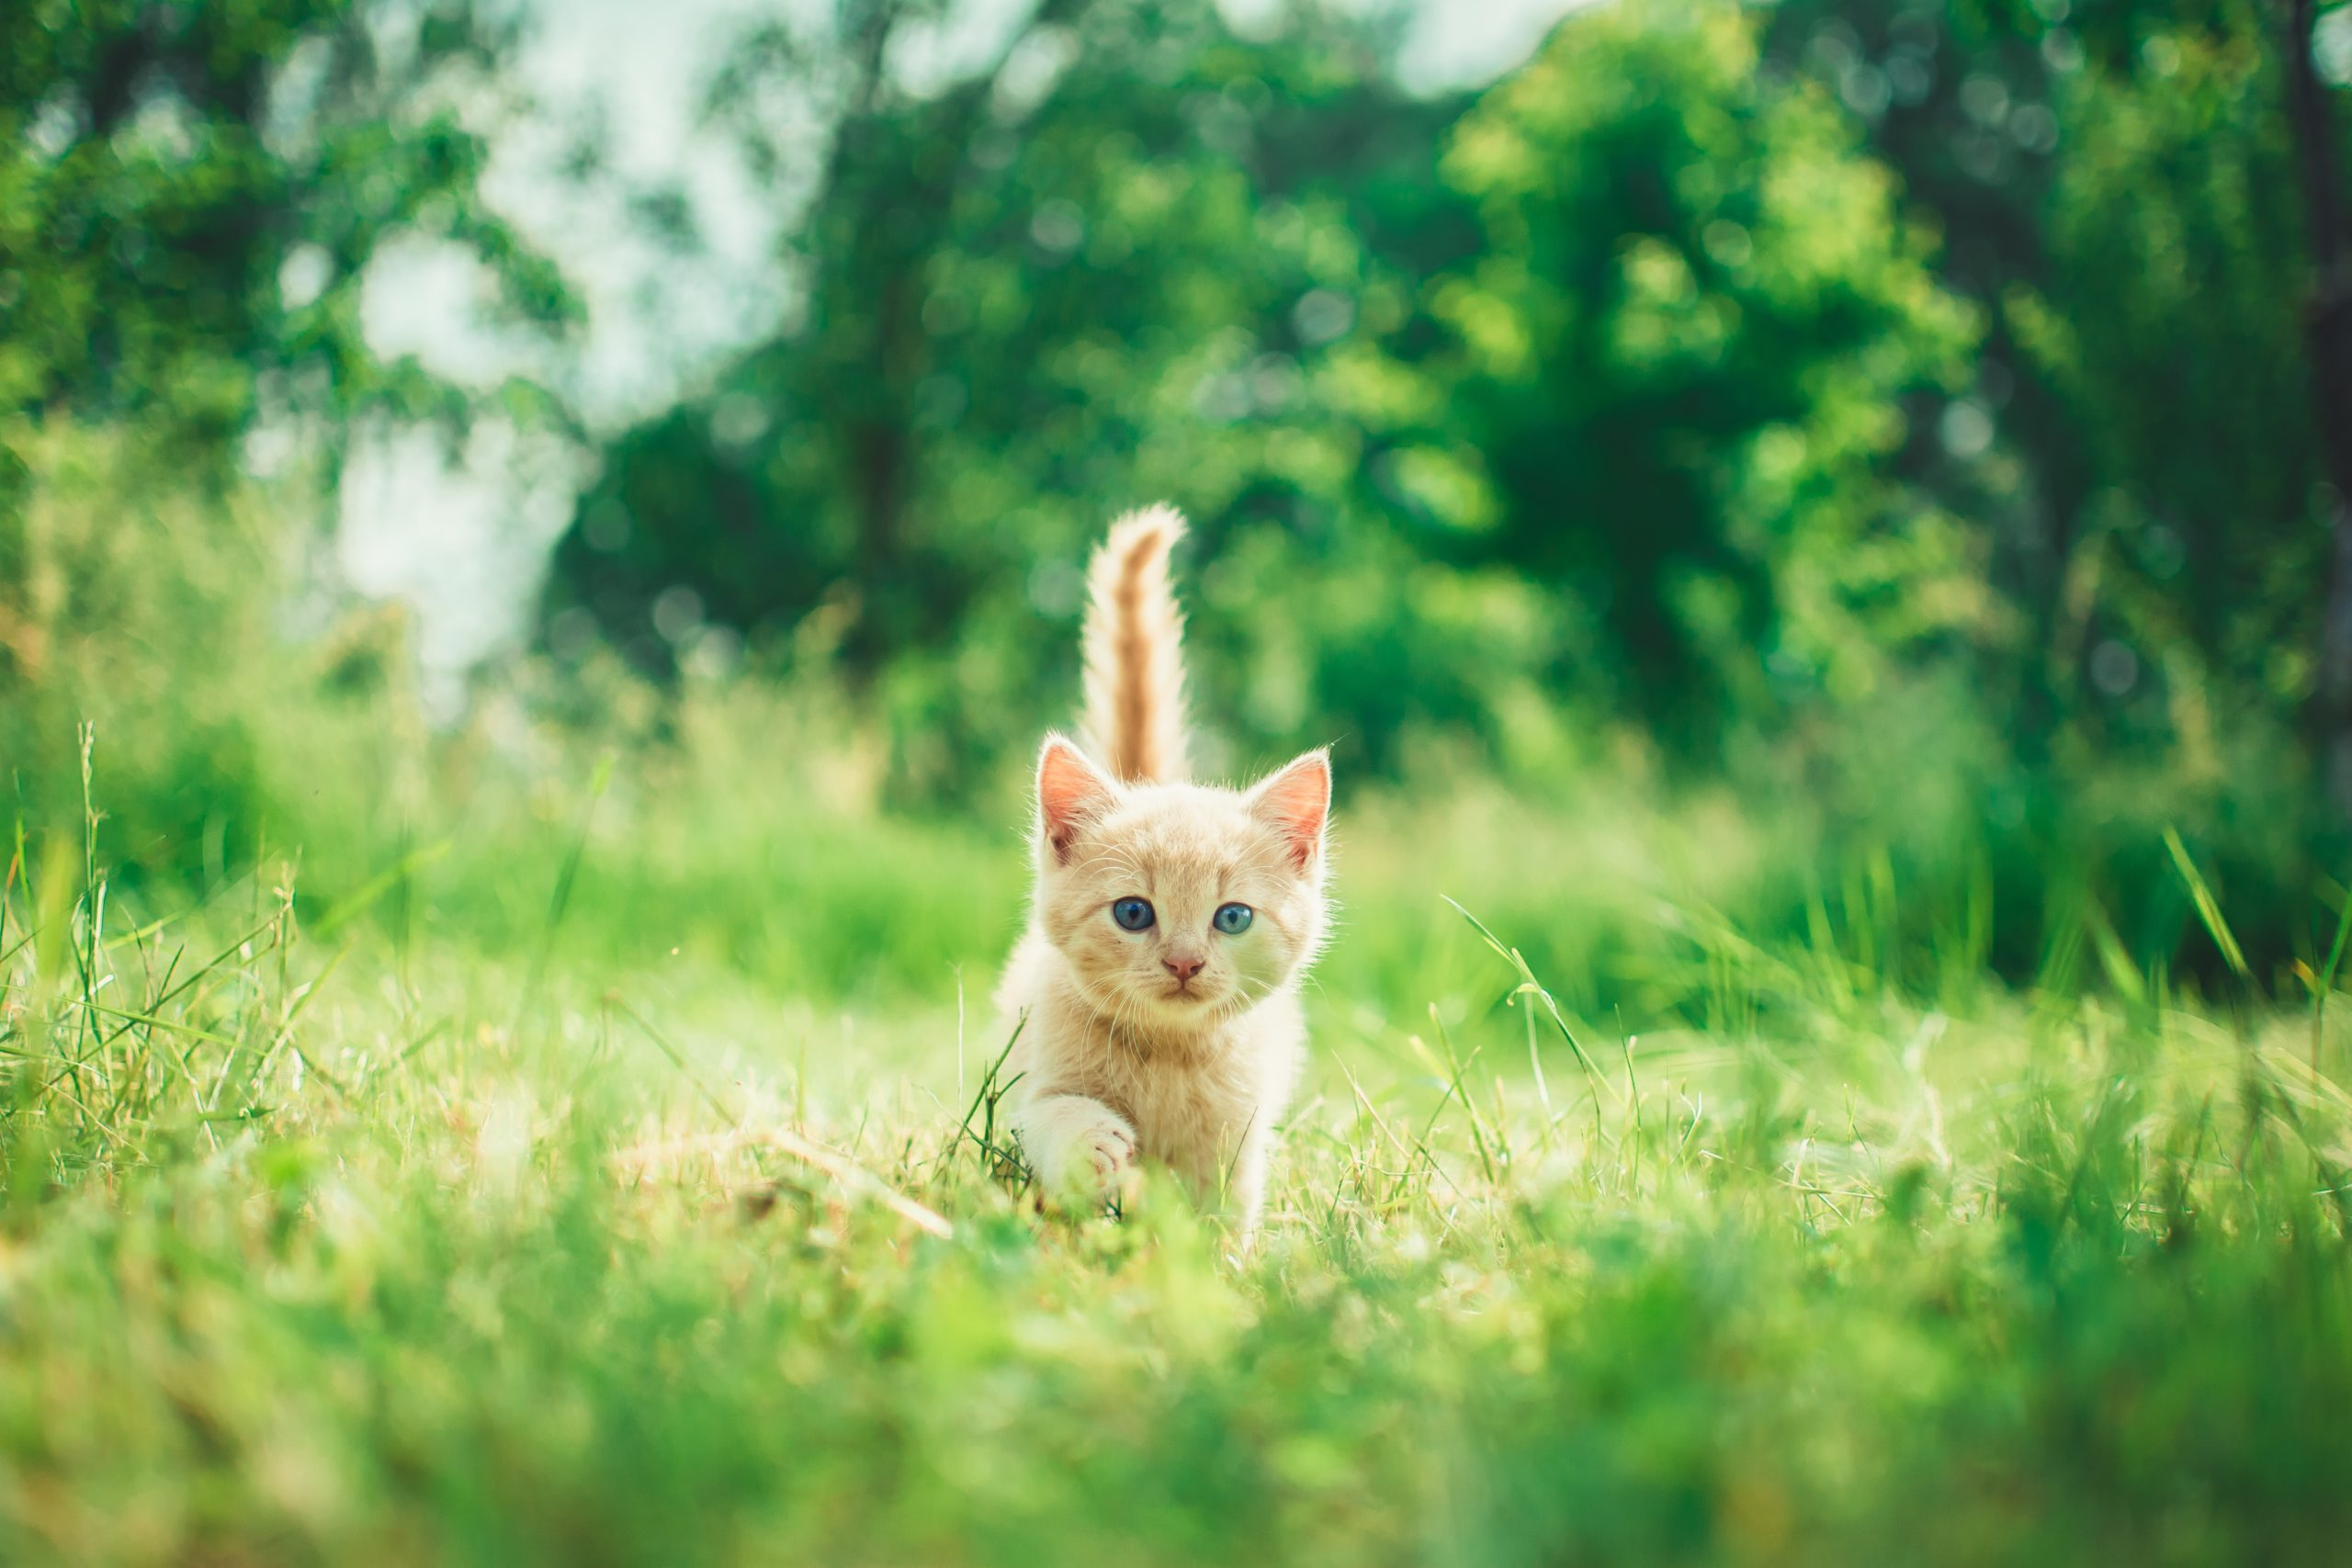 February National Cat Health Month: Tips to Promote Health in Cats